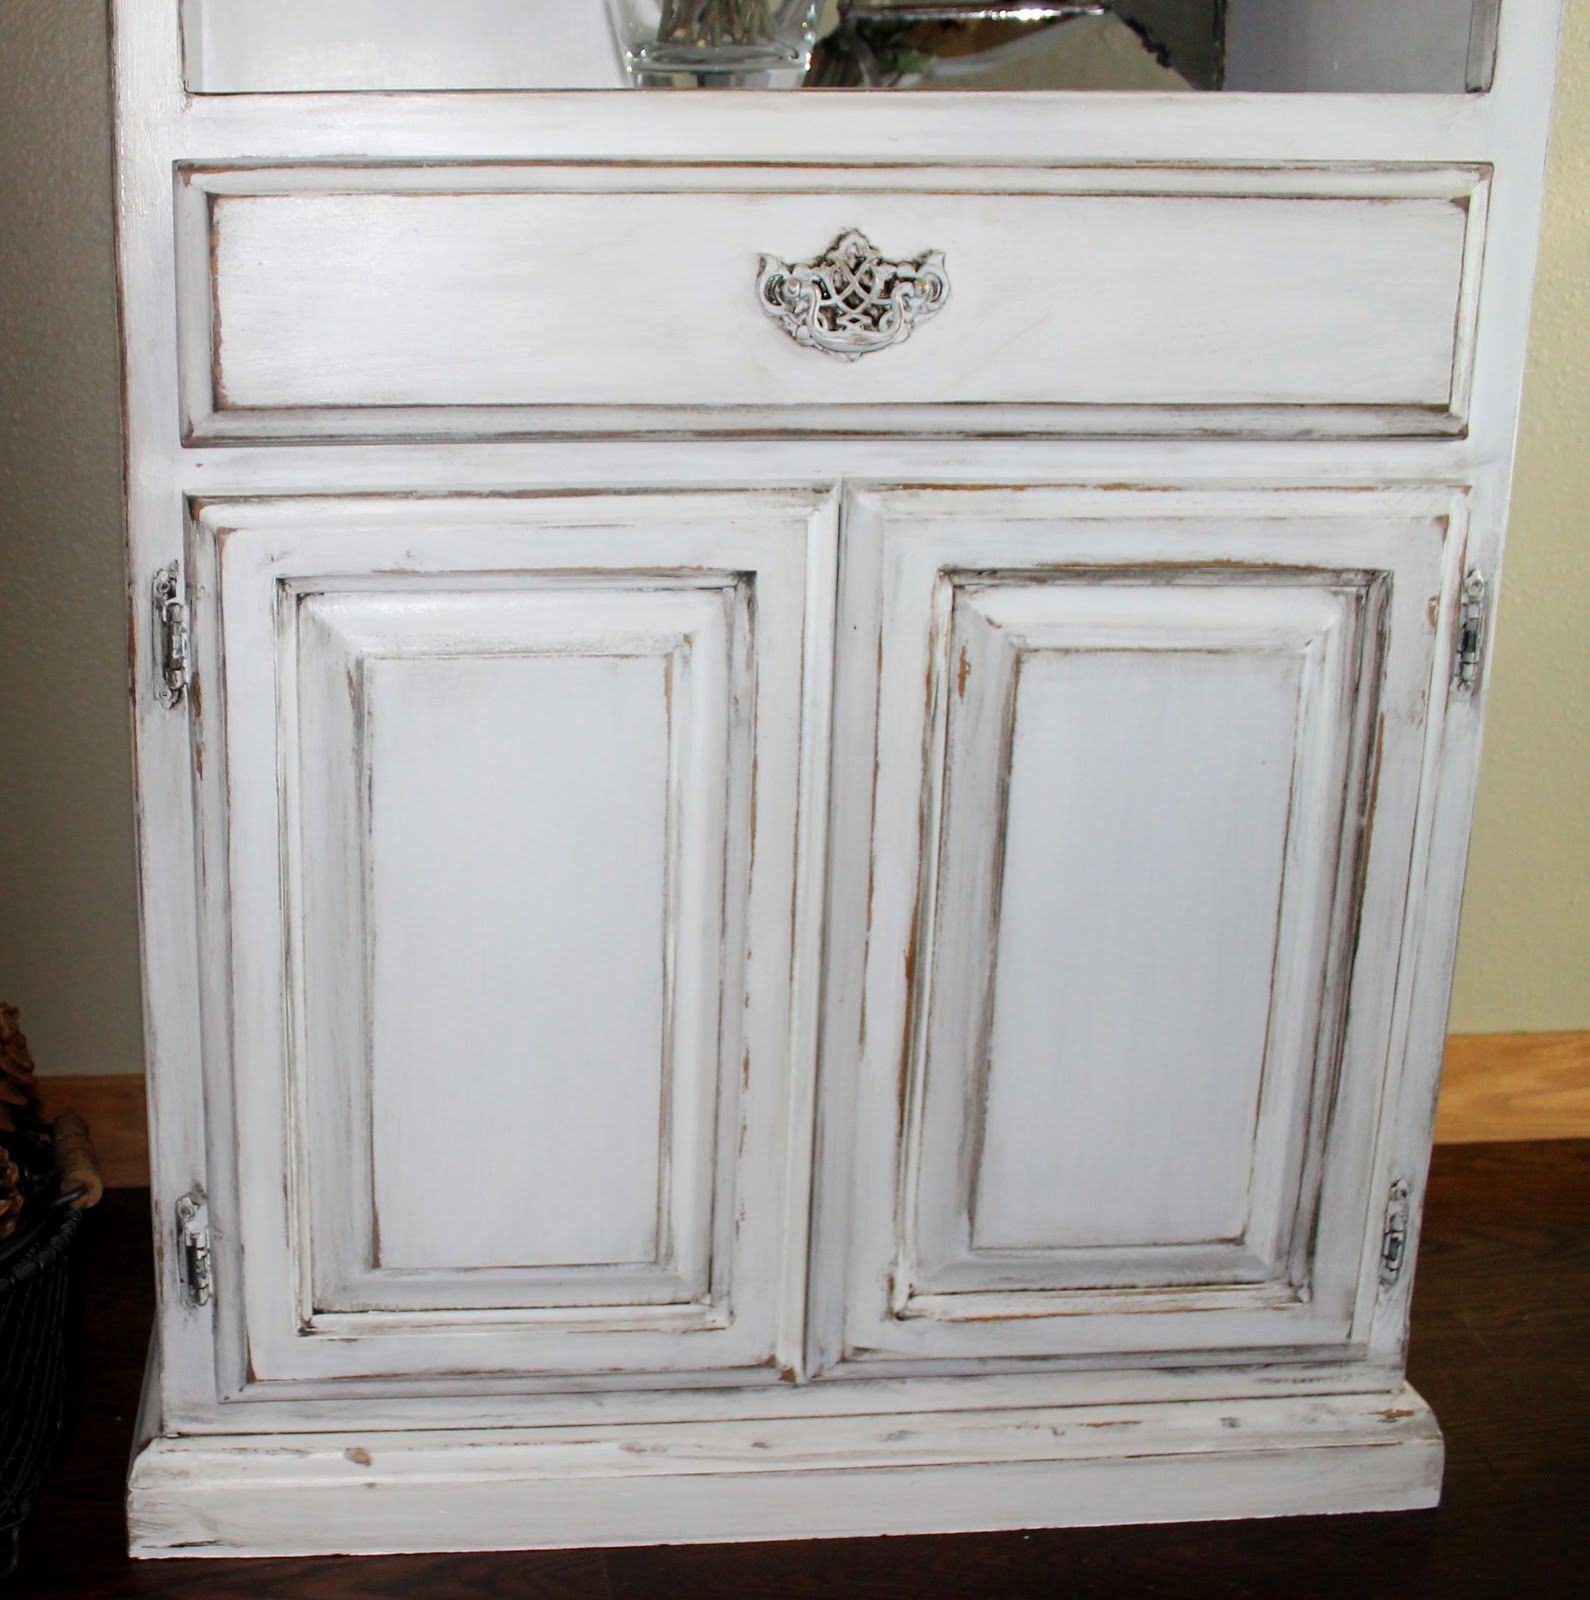 DIY Tutorial On Antiquing Wood Furniture.